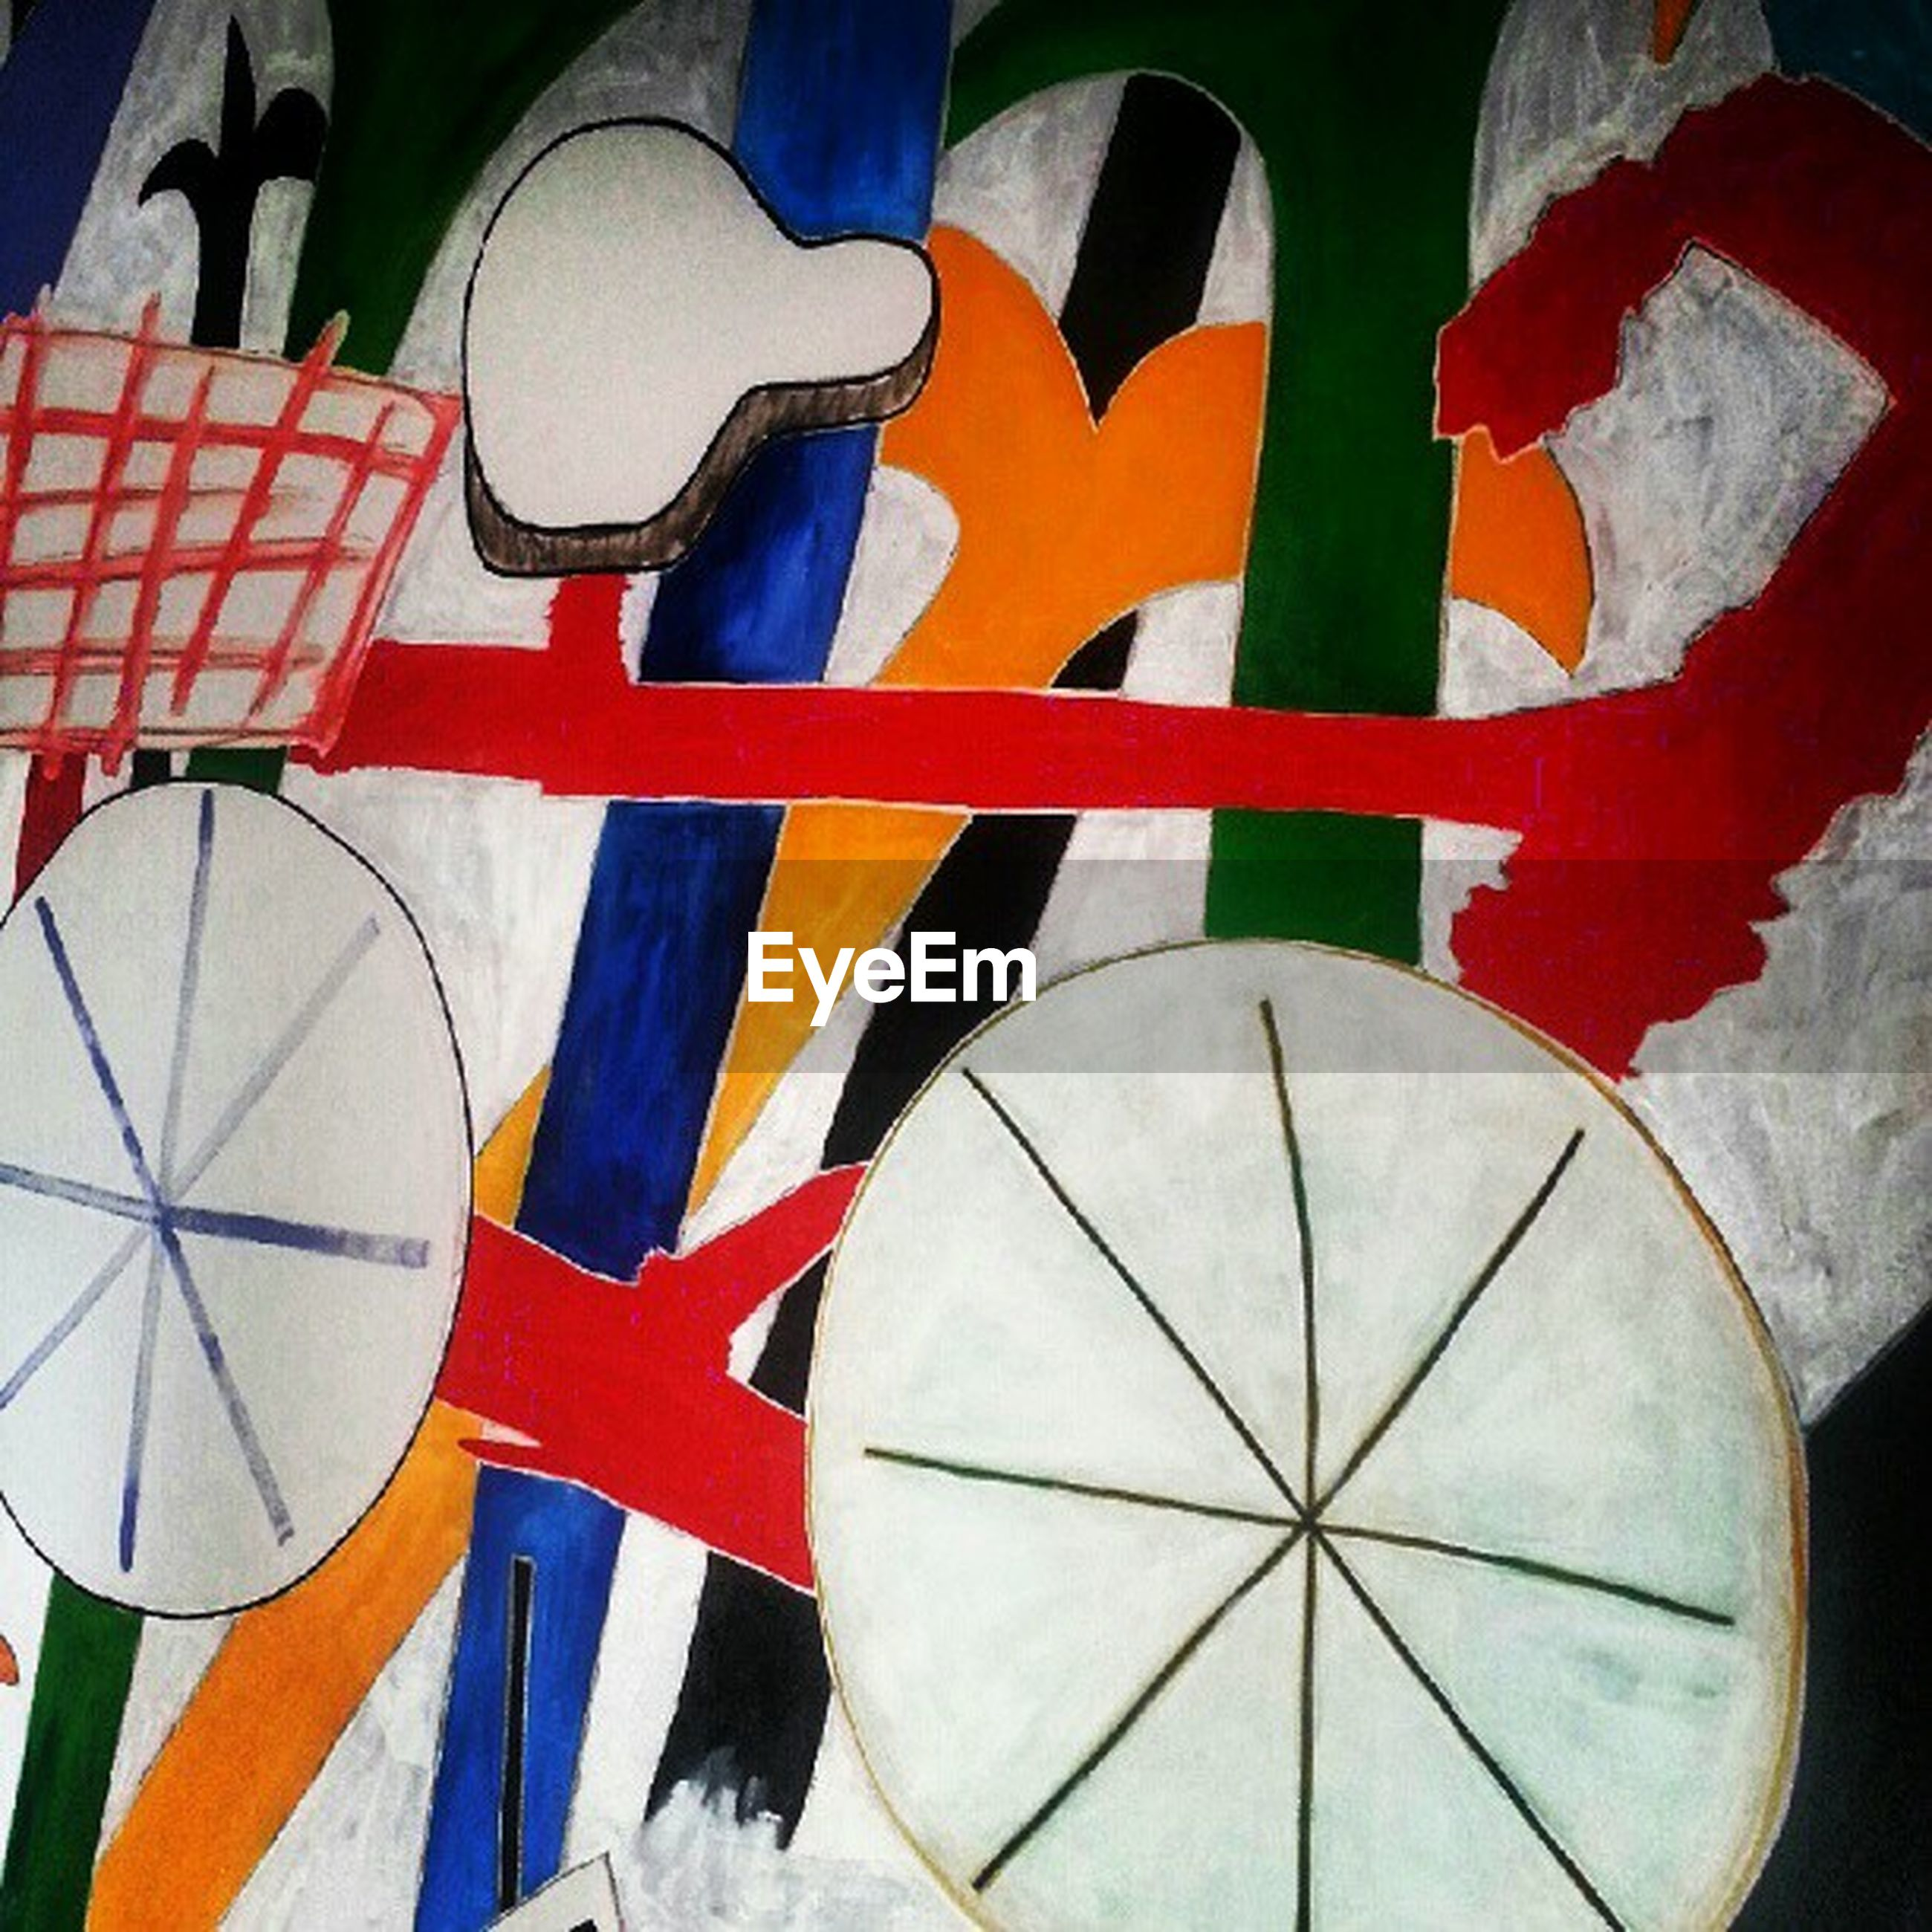 multi colored, low angle view, pattern, art and craft, design, art, creativity, indoors, hanging, shape, red, decoration, colorful, no people, built structure, geometric shape, architecture, close-up, umbrella, day